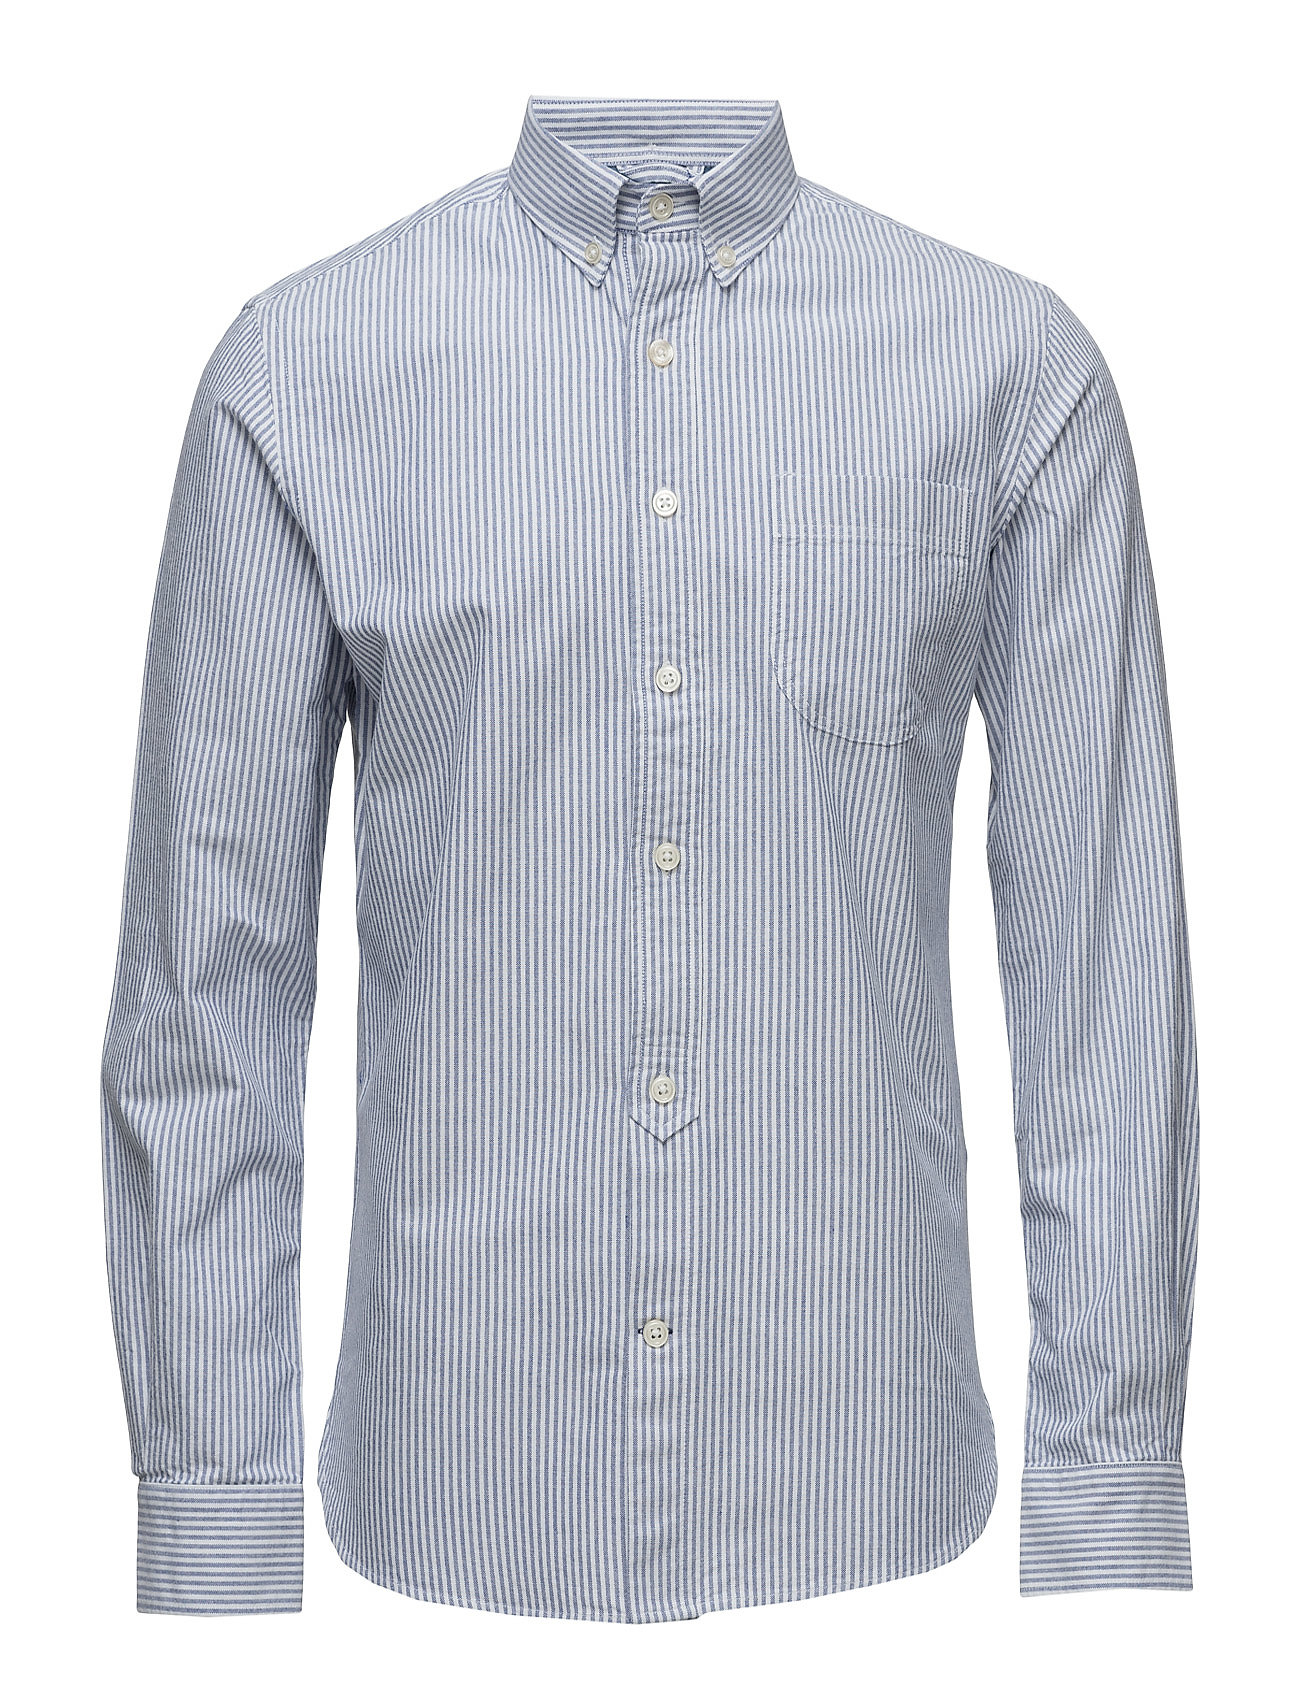 Knowledge Cotton Apparel Button Down Oxford Shirt Striped -